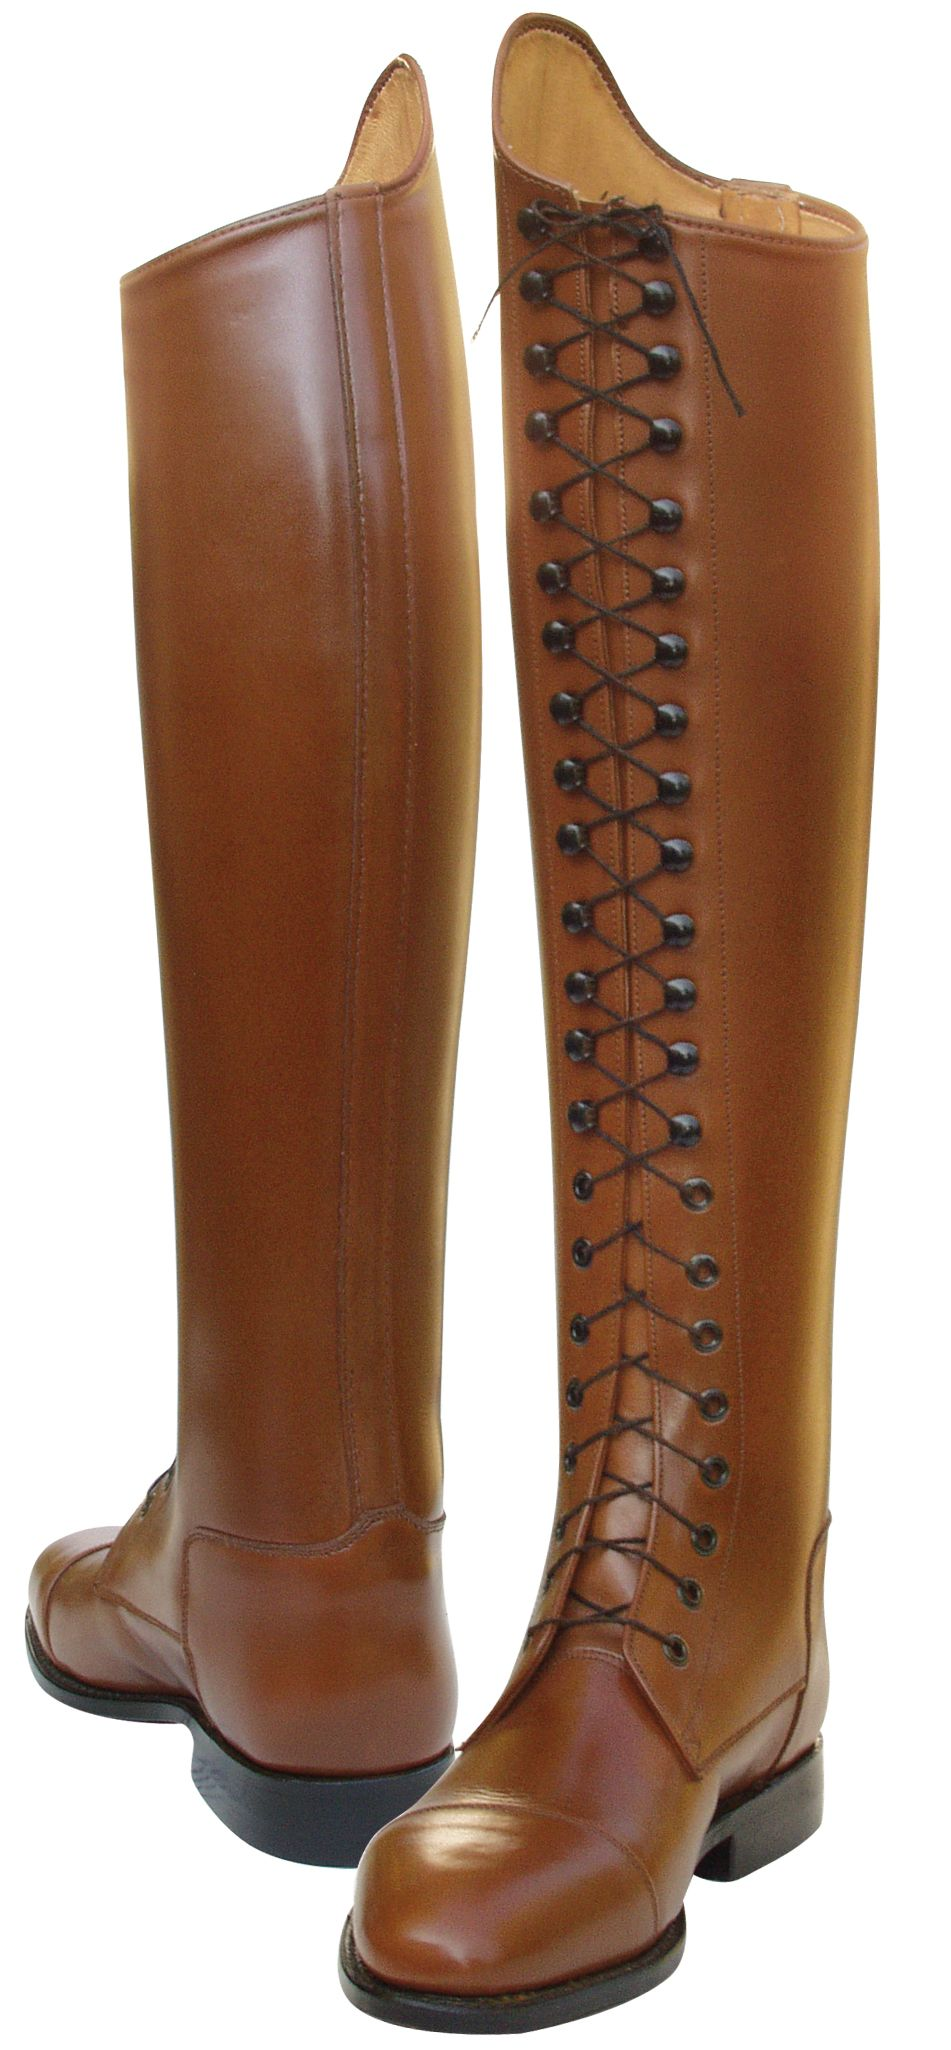 Konig Polo Boots From Www Zebraproducts Co Uk I Just